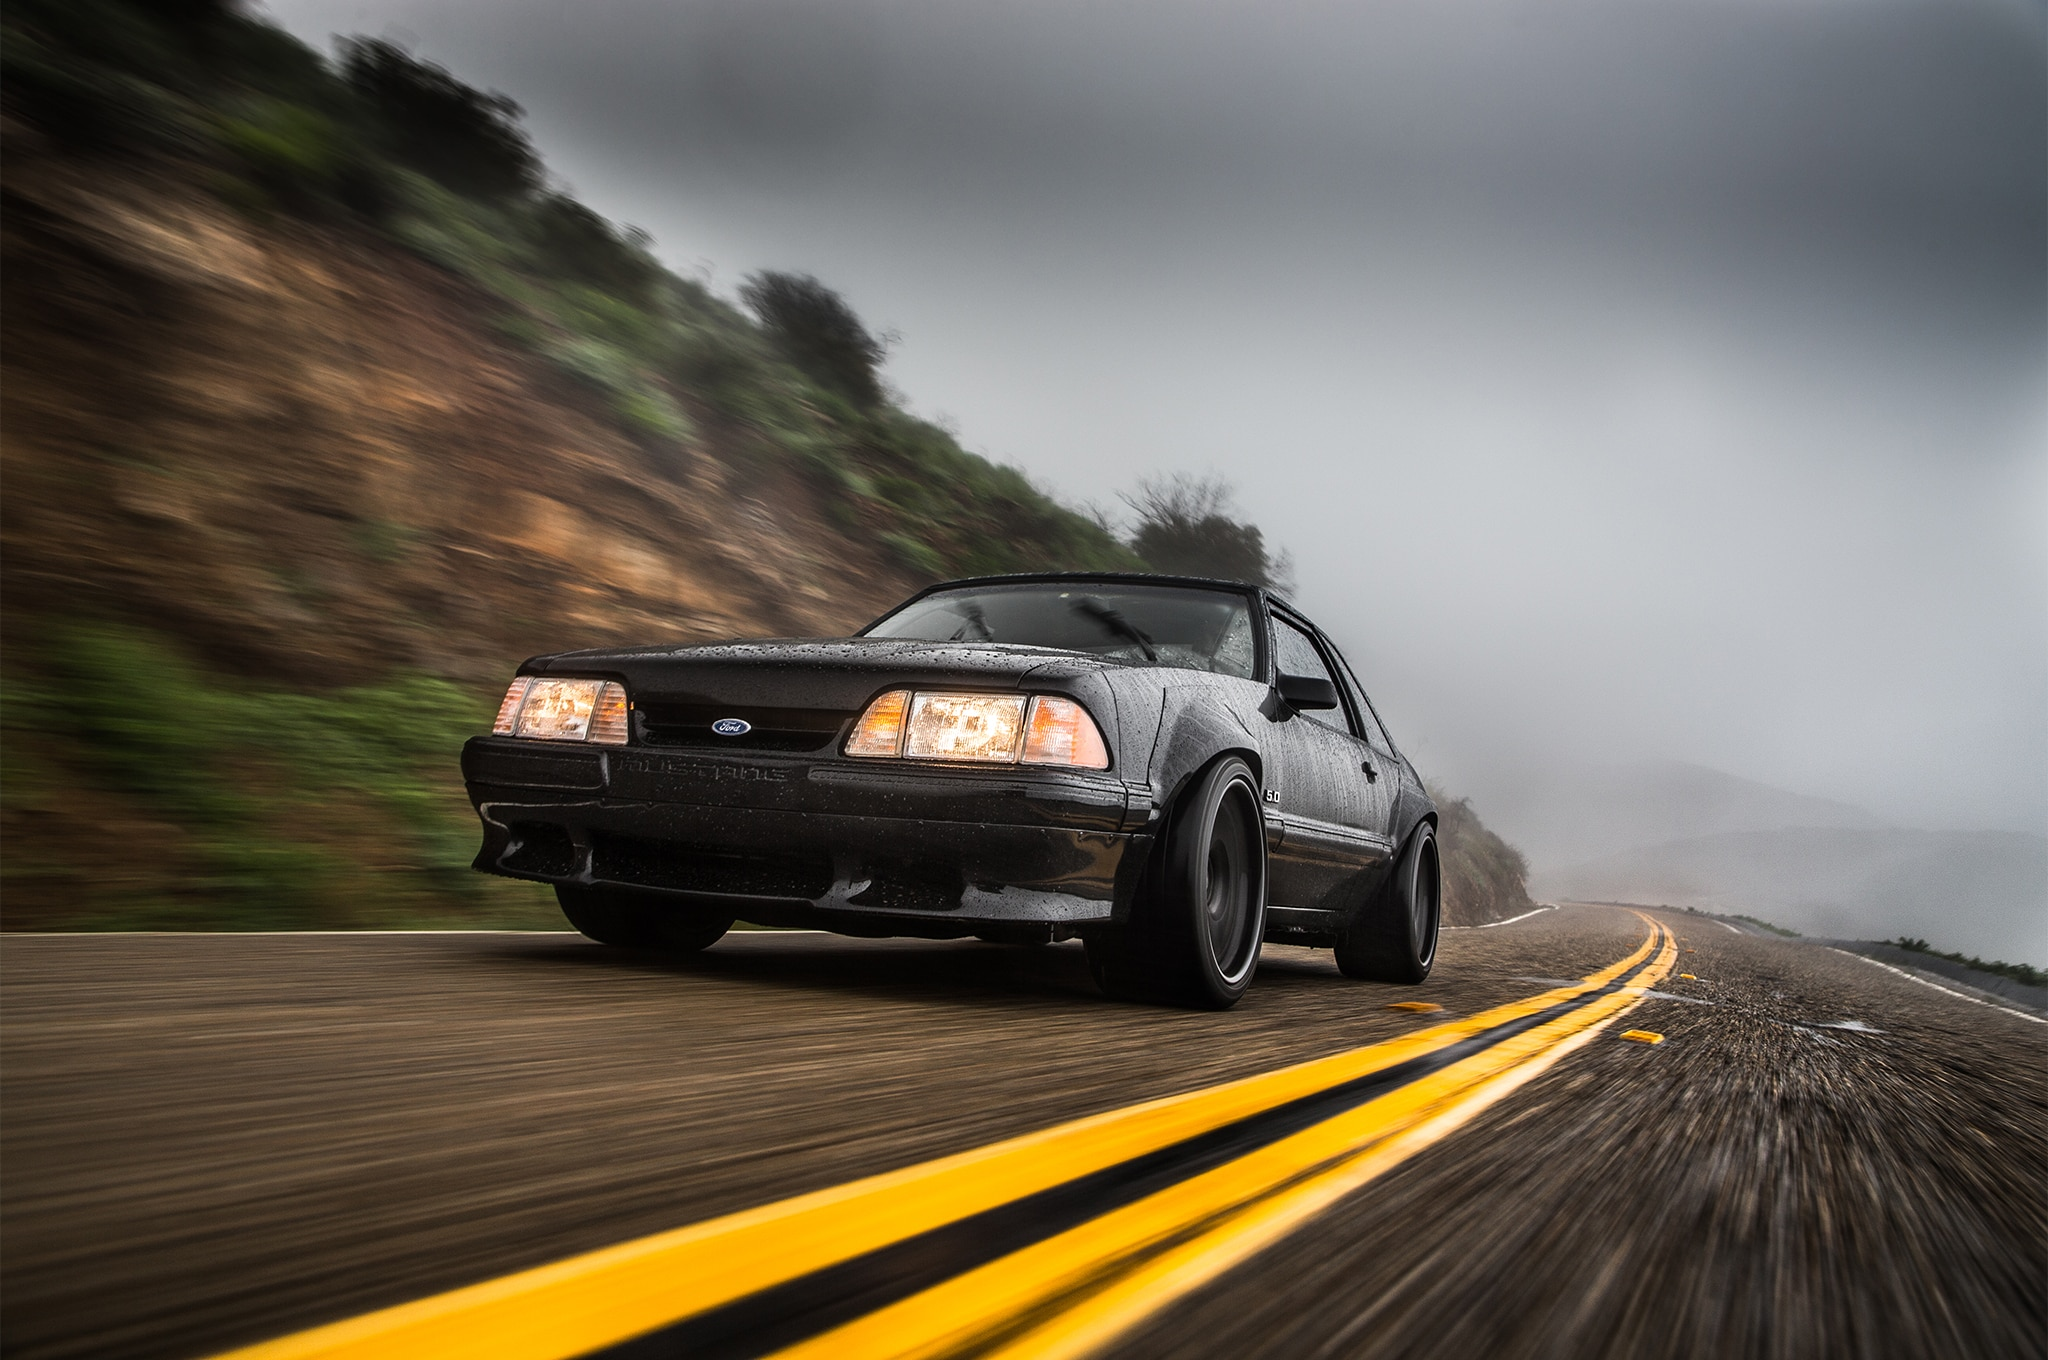 1988 Ford Mustang LX 5 0 SSP Front Three Quarter In Motion 02